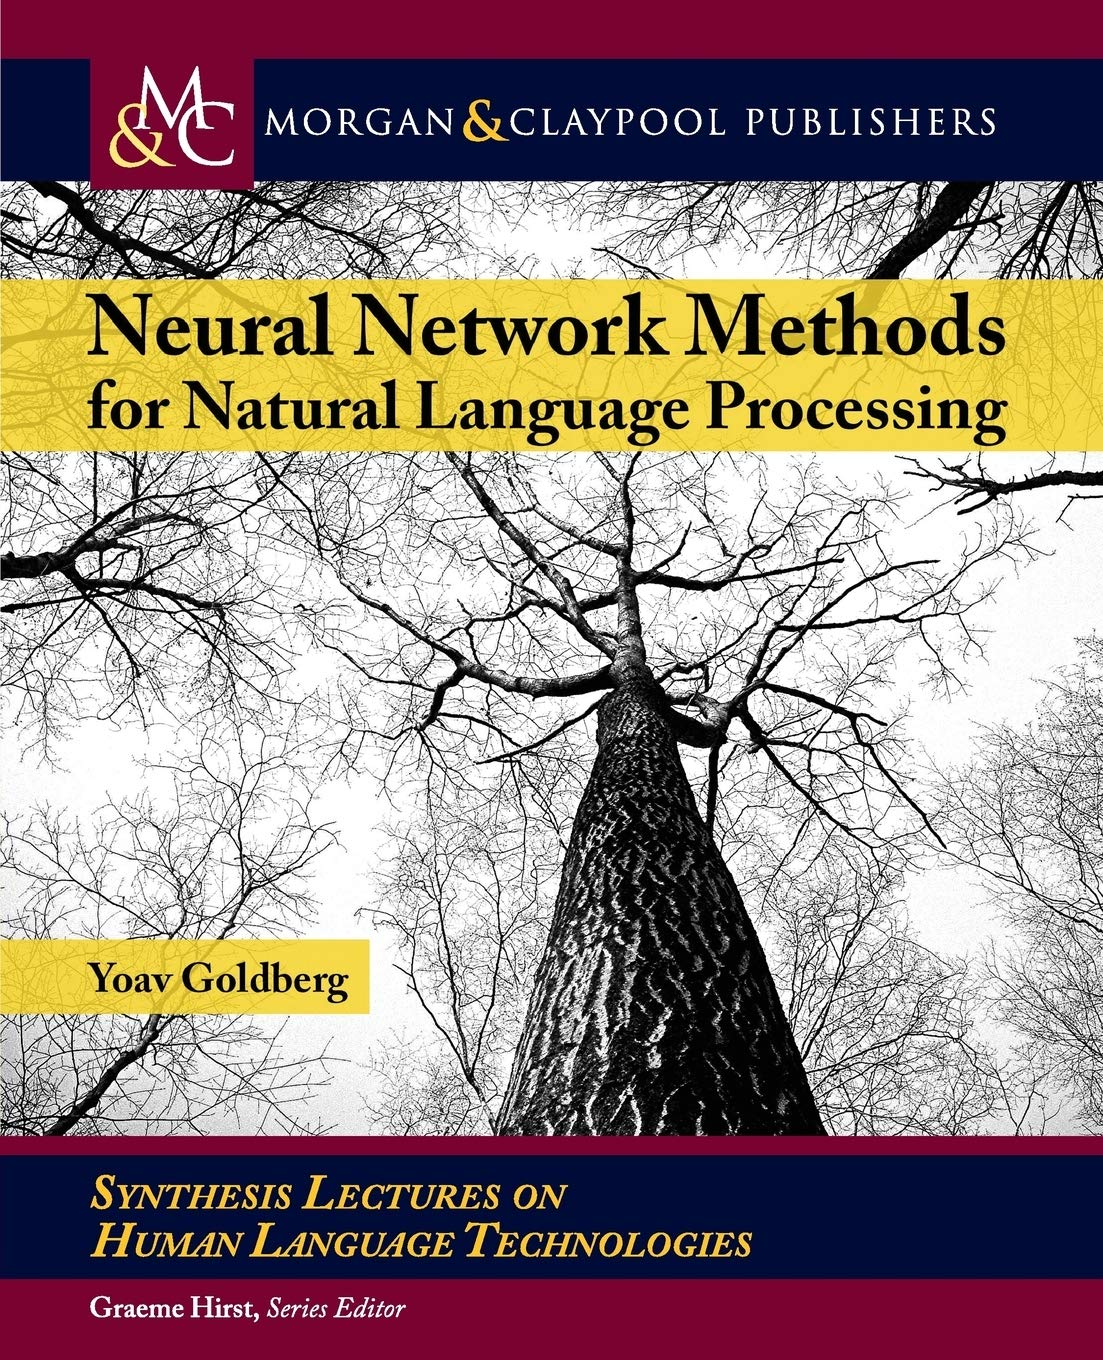 Image OfNeural Network Methods In Natural Language Processing (Synthesis Lectures On Human Language Technologies, Band 37)